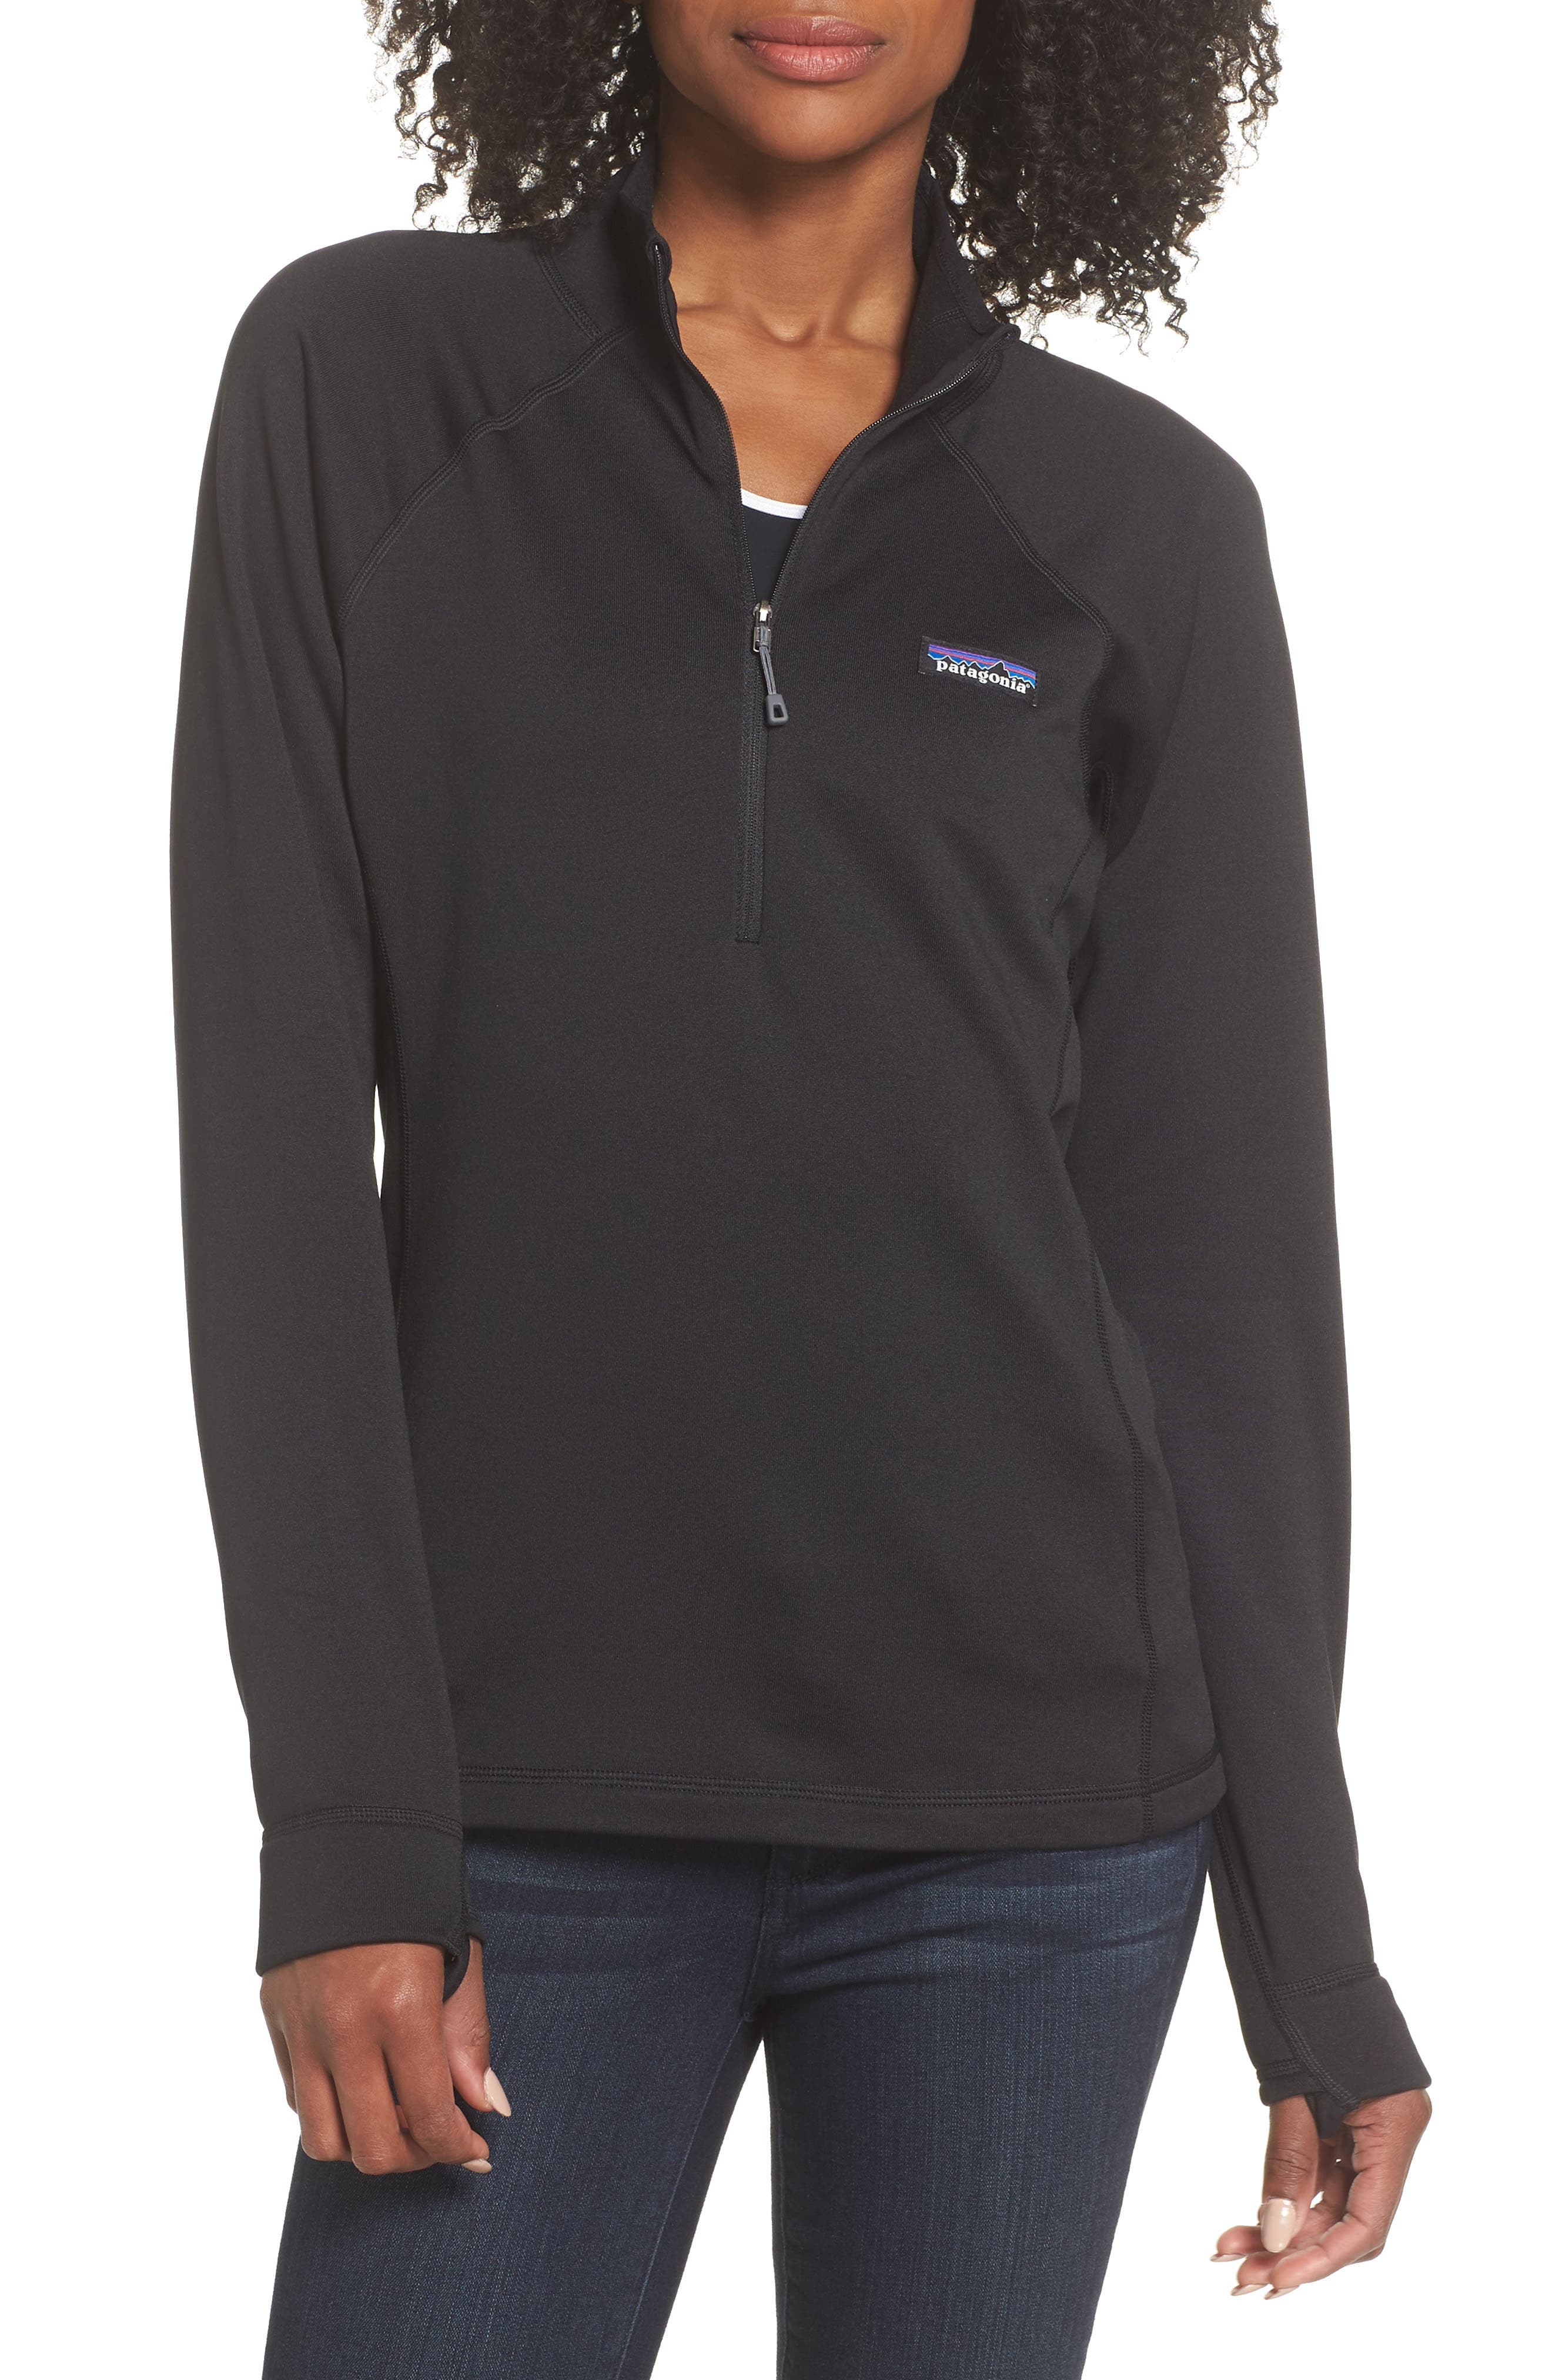 Crosstrek Quarter Zip Jacket,                             Main thumbnail 1, color,                             001